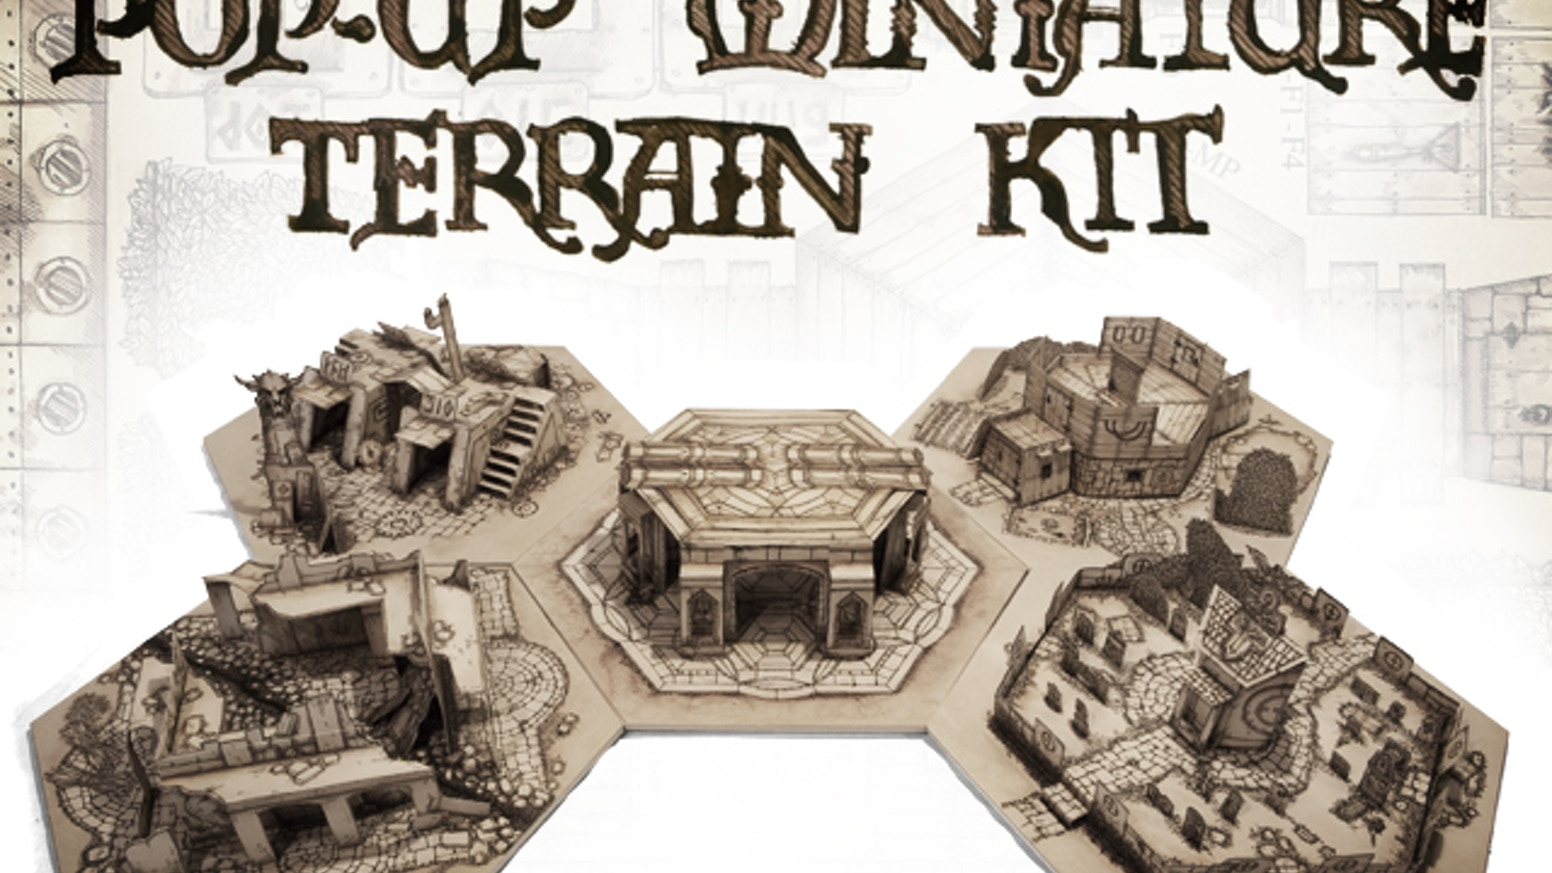 We're producing a kit so you can craft paper pop-up terrain for miniature tabletop wargaming and RPGs!